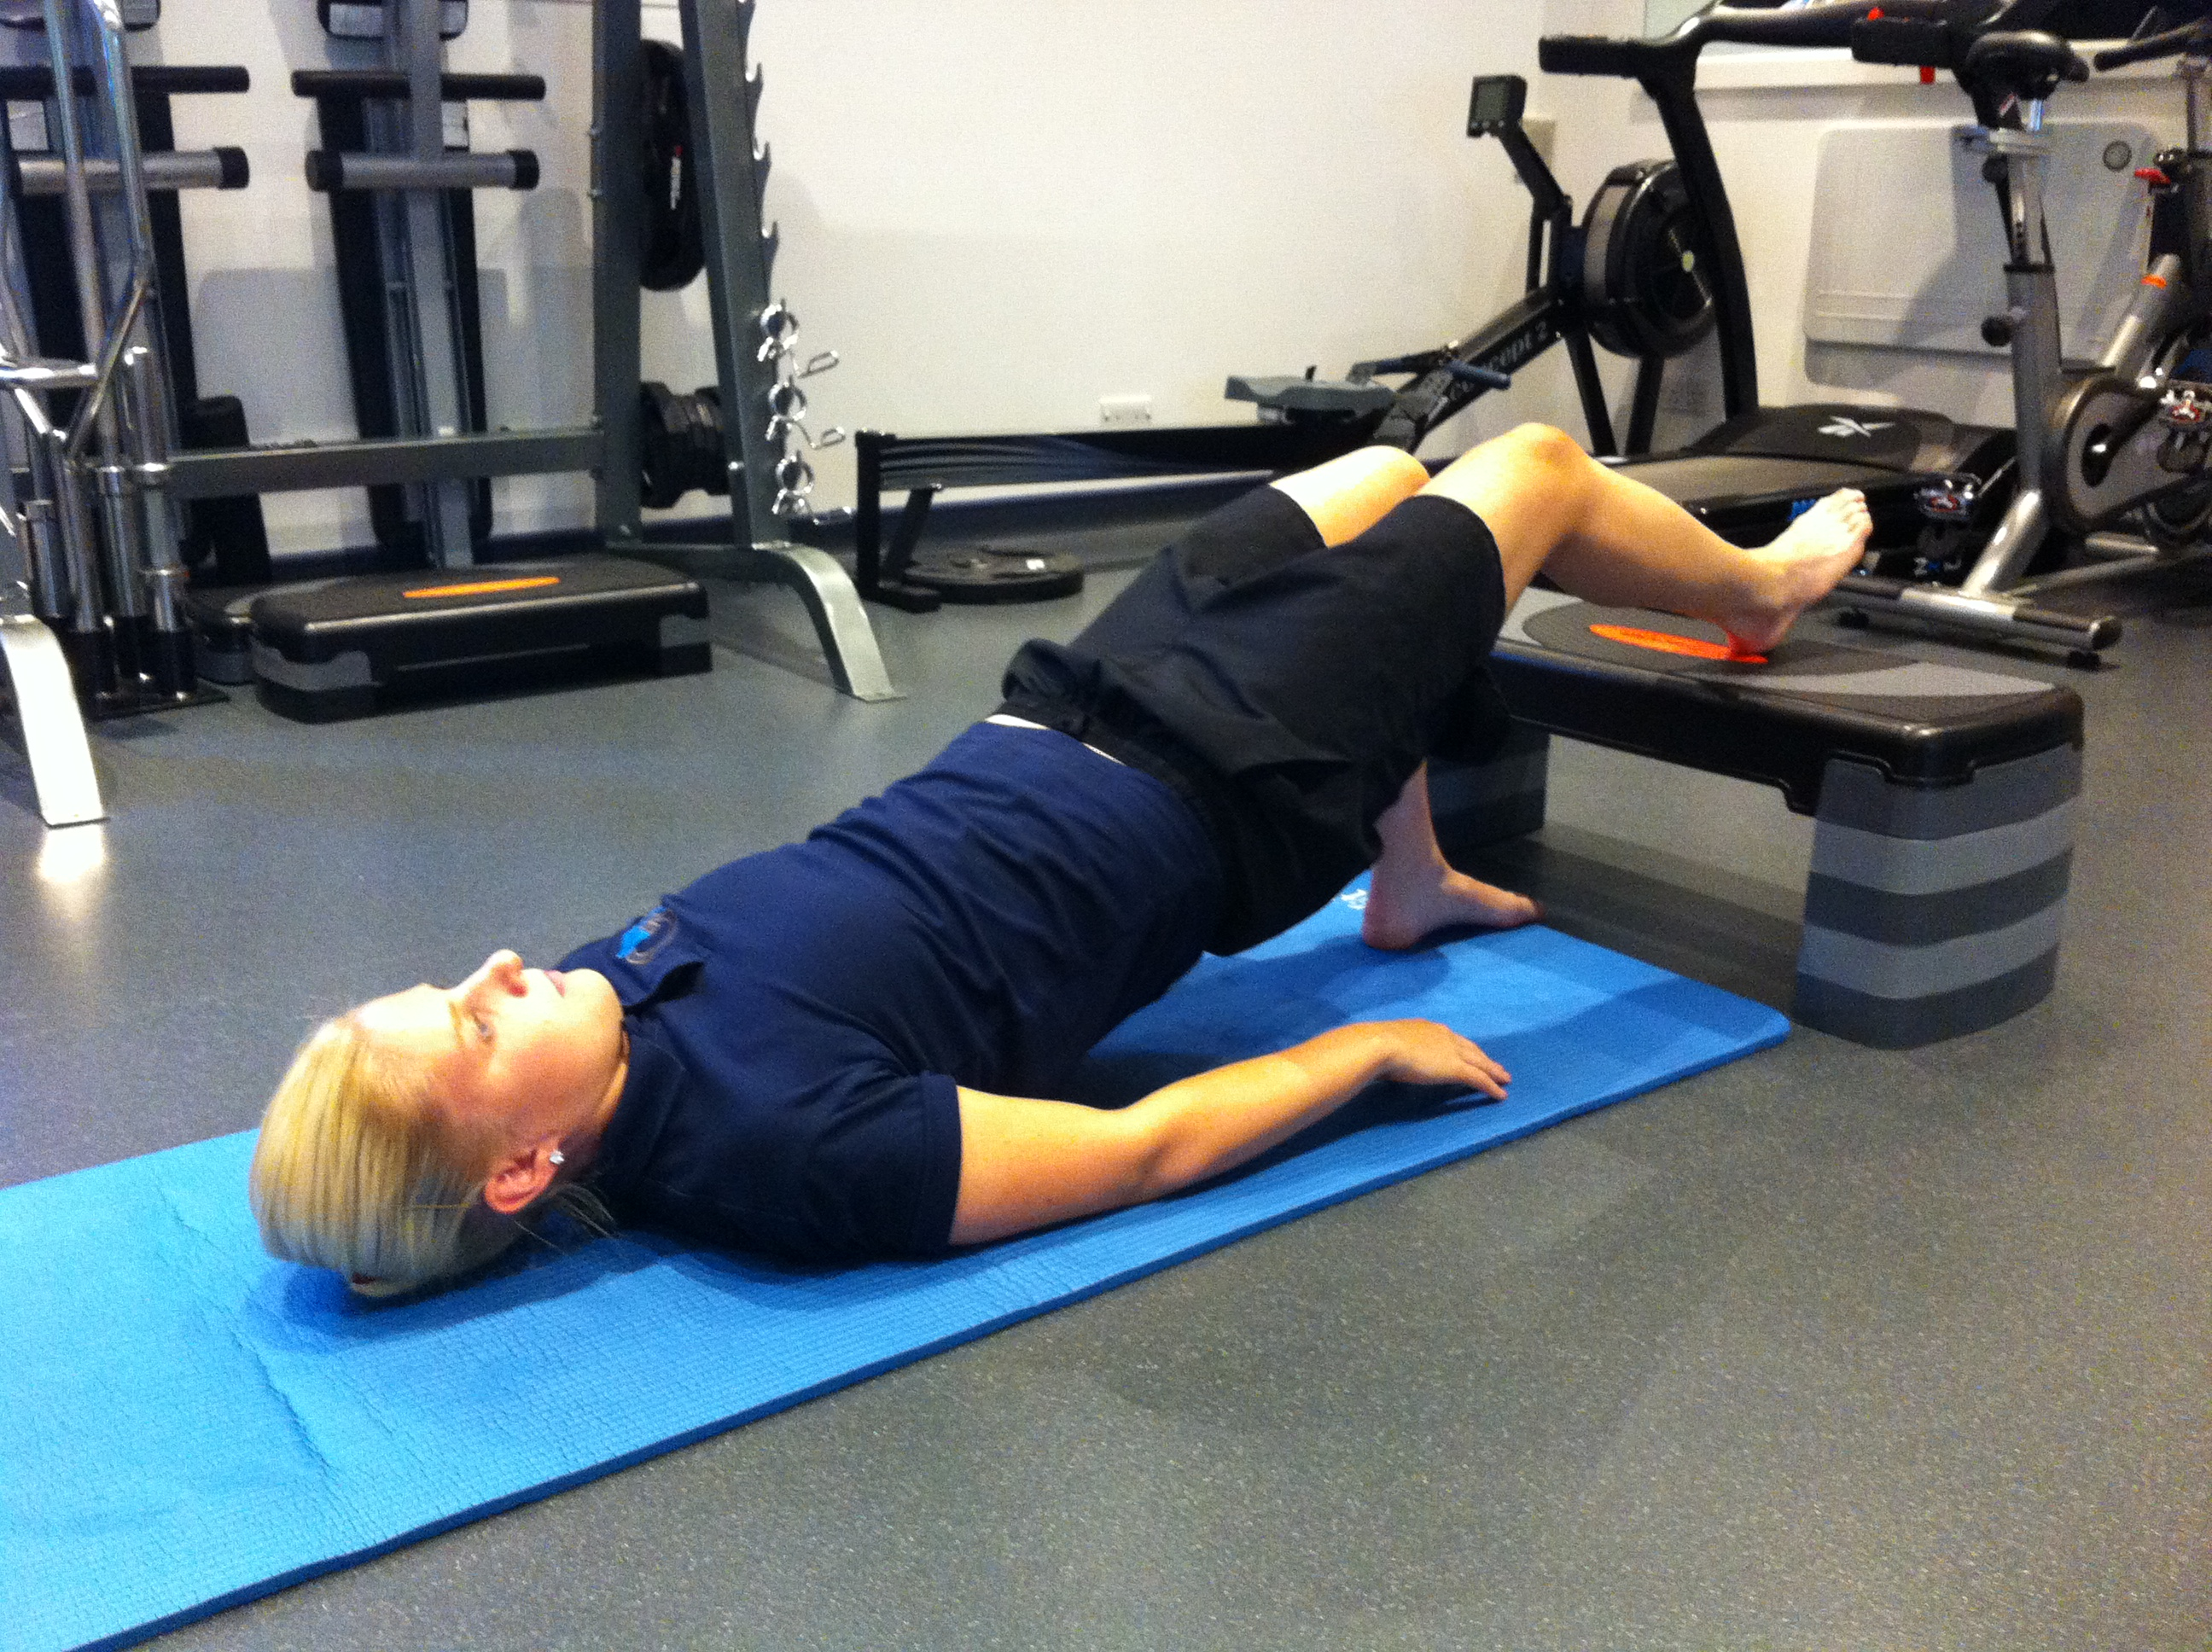 Leg Strengthening Exercises Archives - G4 Physiotherapy & Fitness